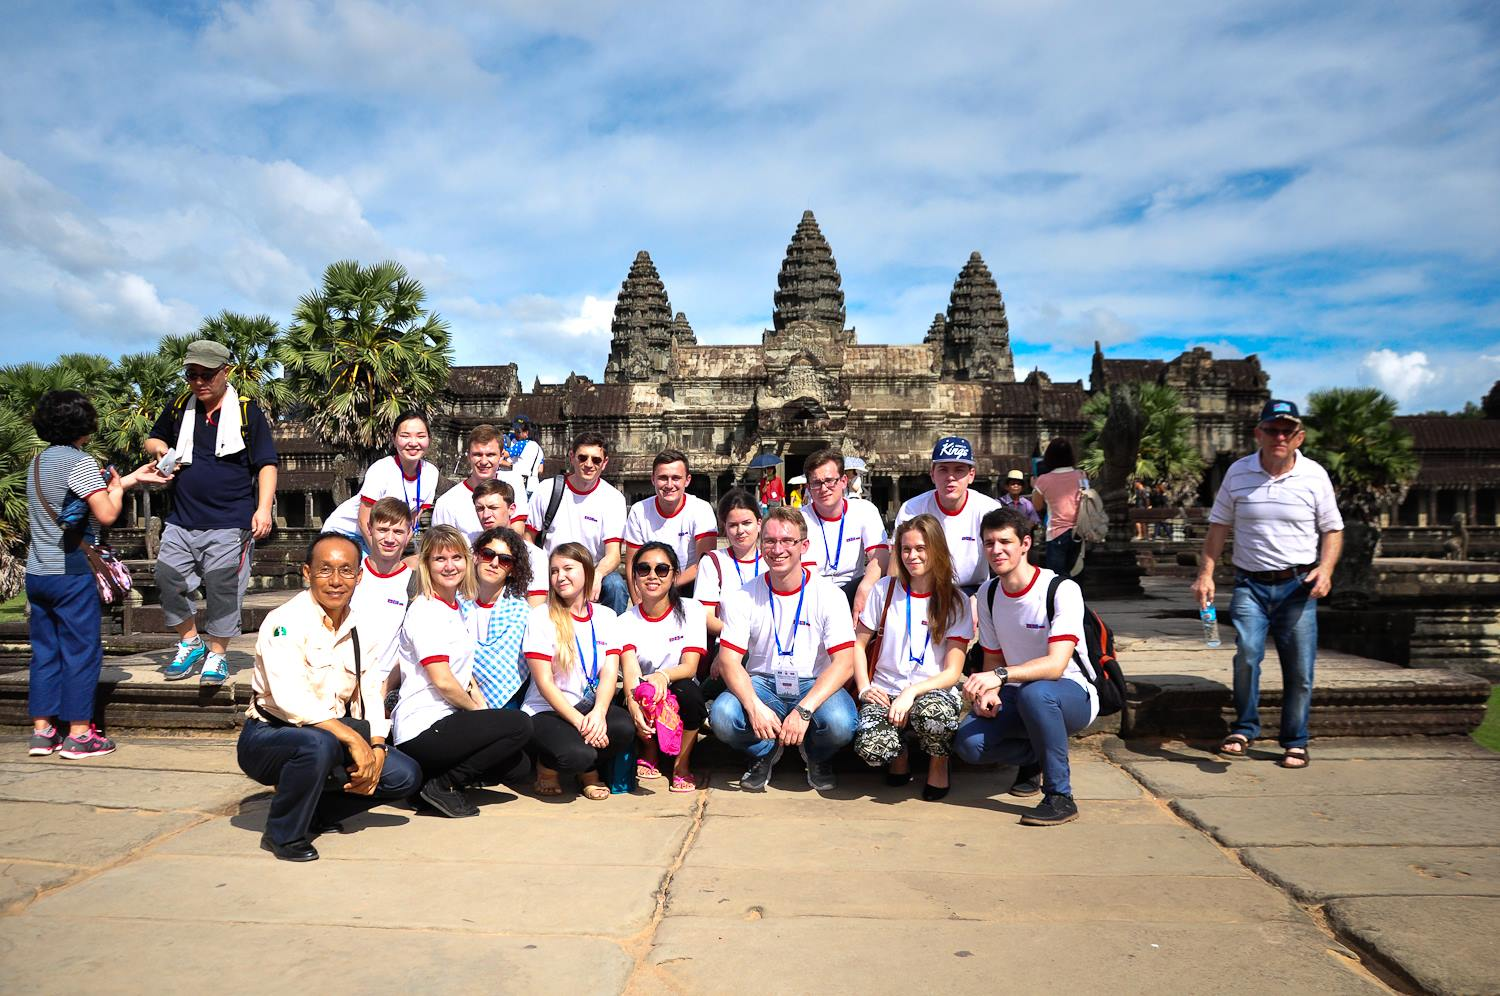 Participants of the 4th ASEAN-Russia Youth Summit in Siem Reap, Cambodia.